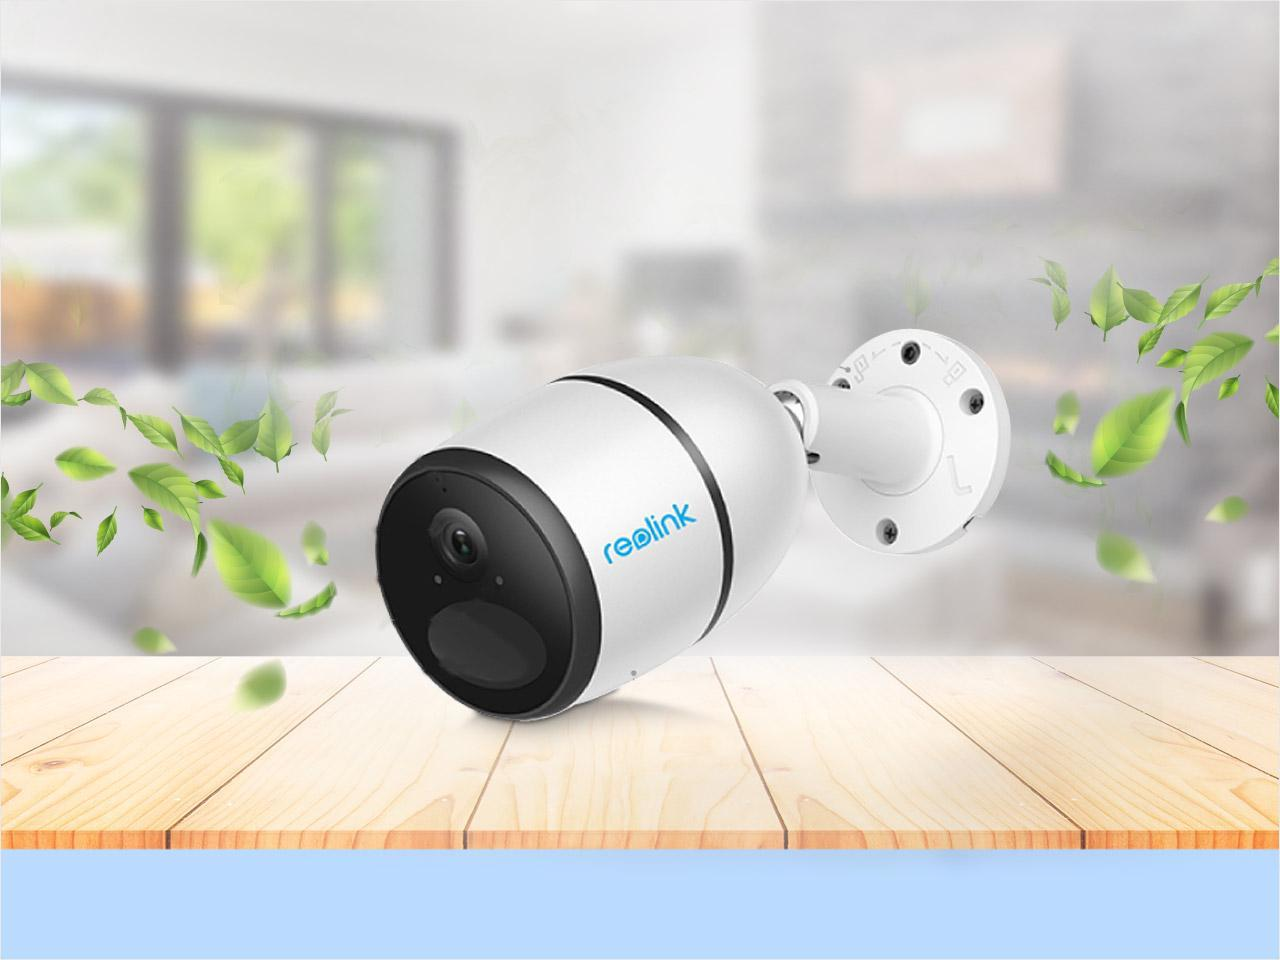 Reolink GO 3G 4G Wireless Security Camera Battery Powered 1080P with Color Night Vision, Local Storage, Cloud, PIR Motion Detection